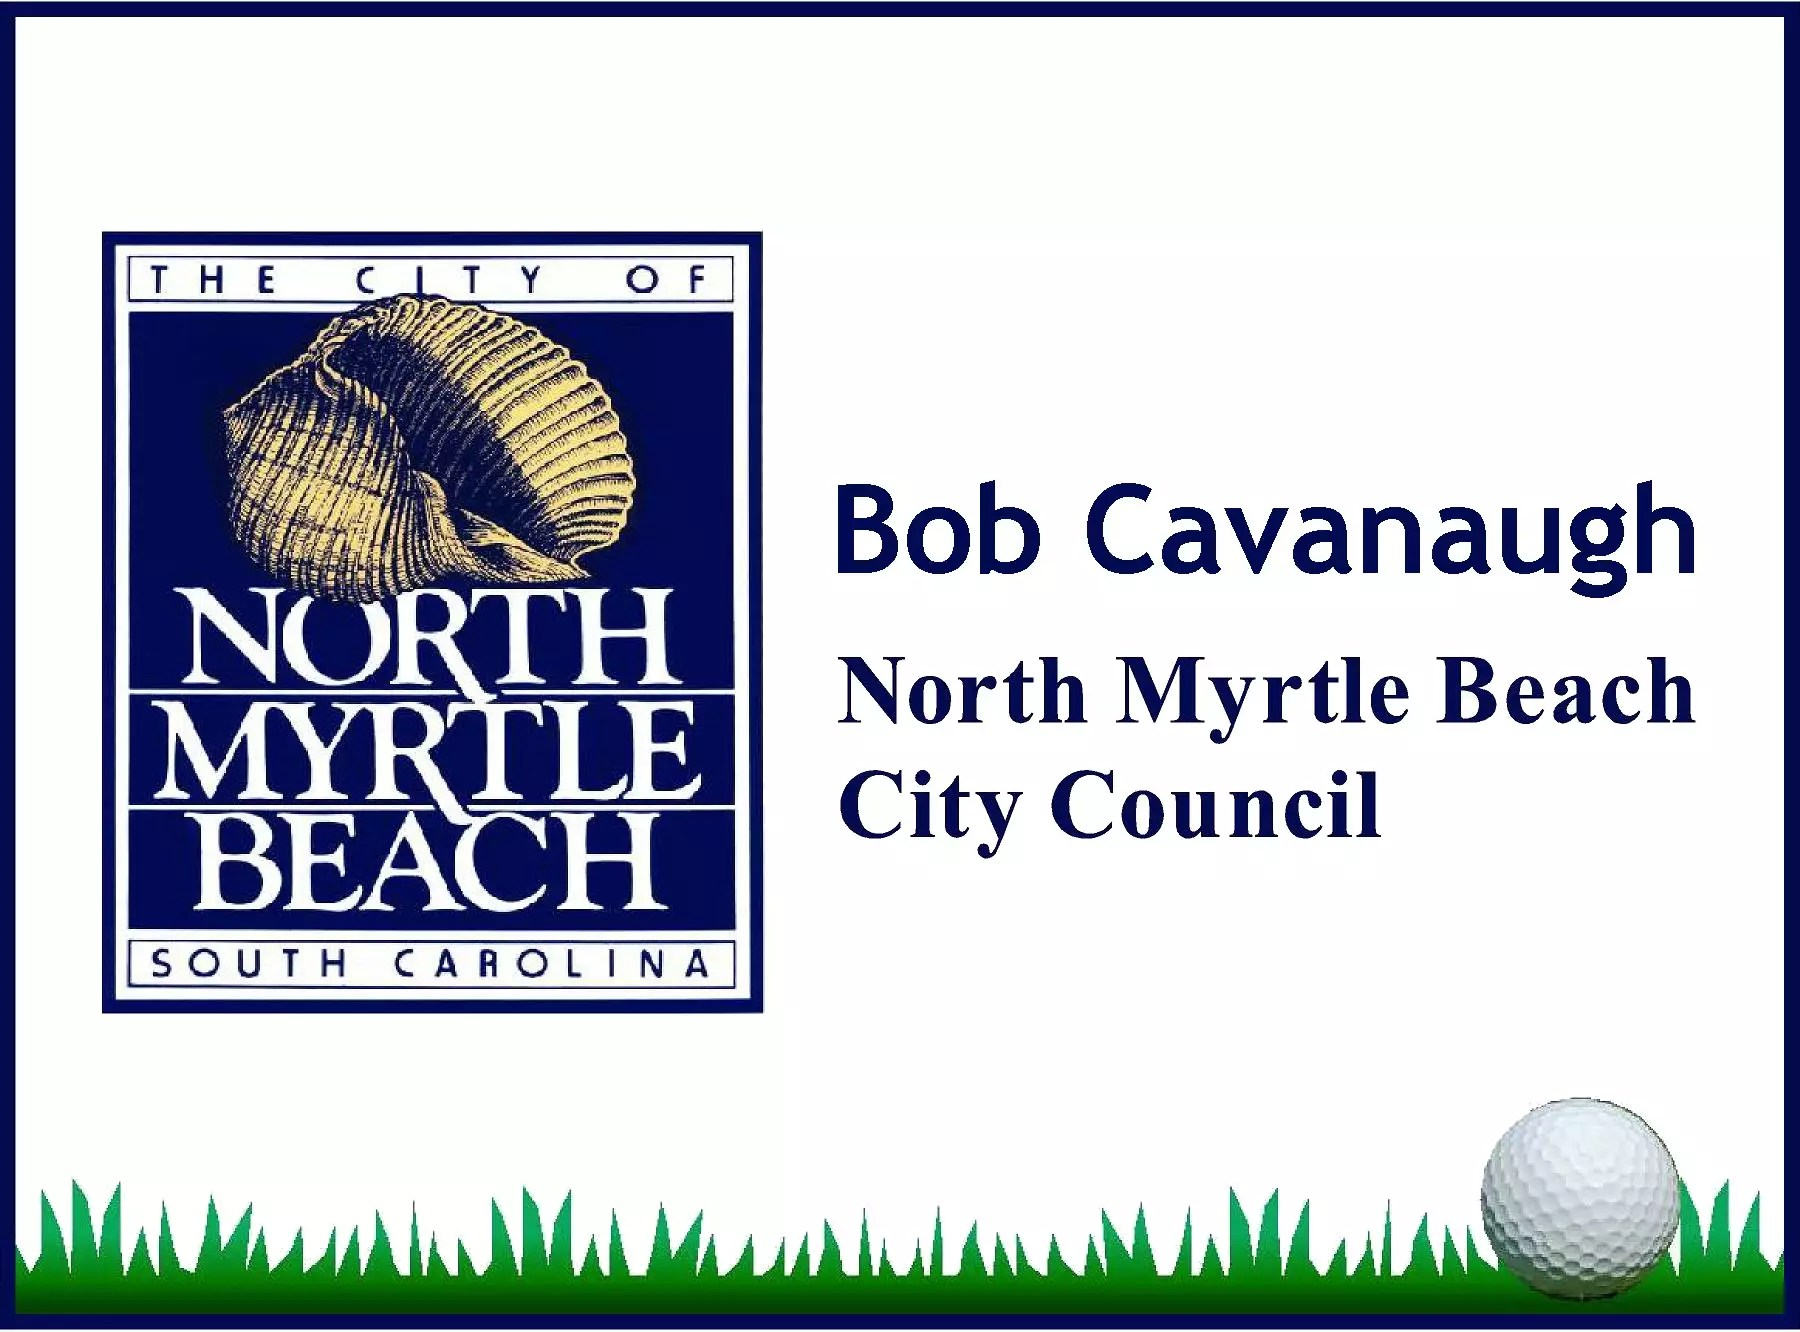 Bob Cavanaugh North Myrtle Beach City Council